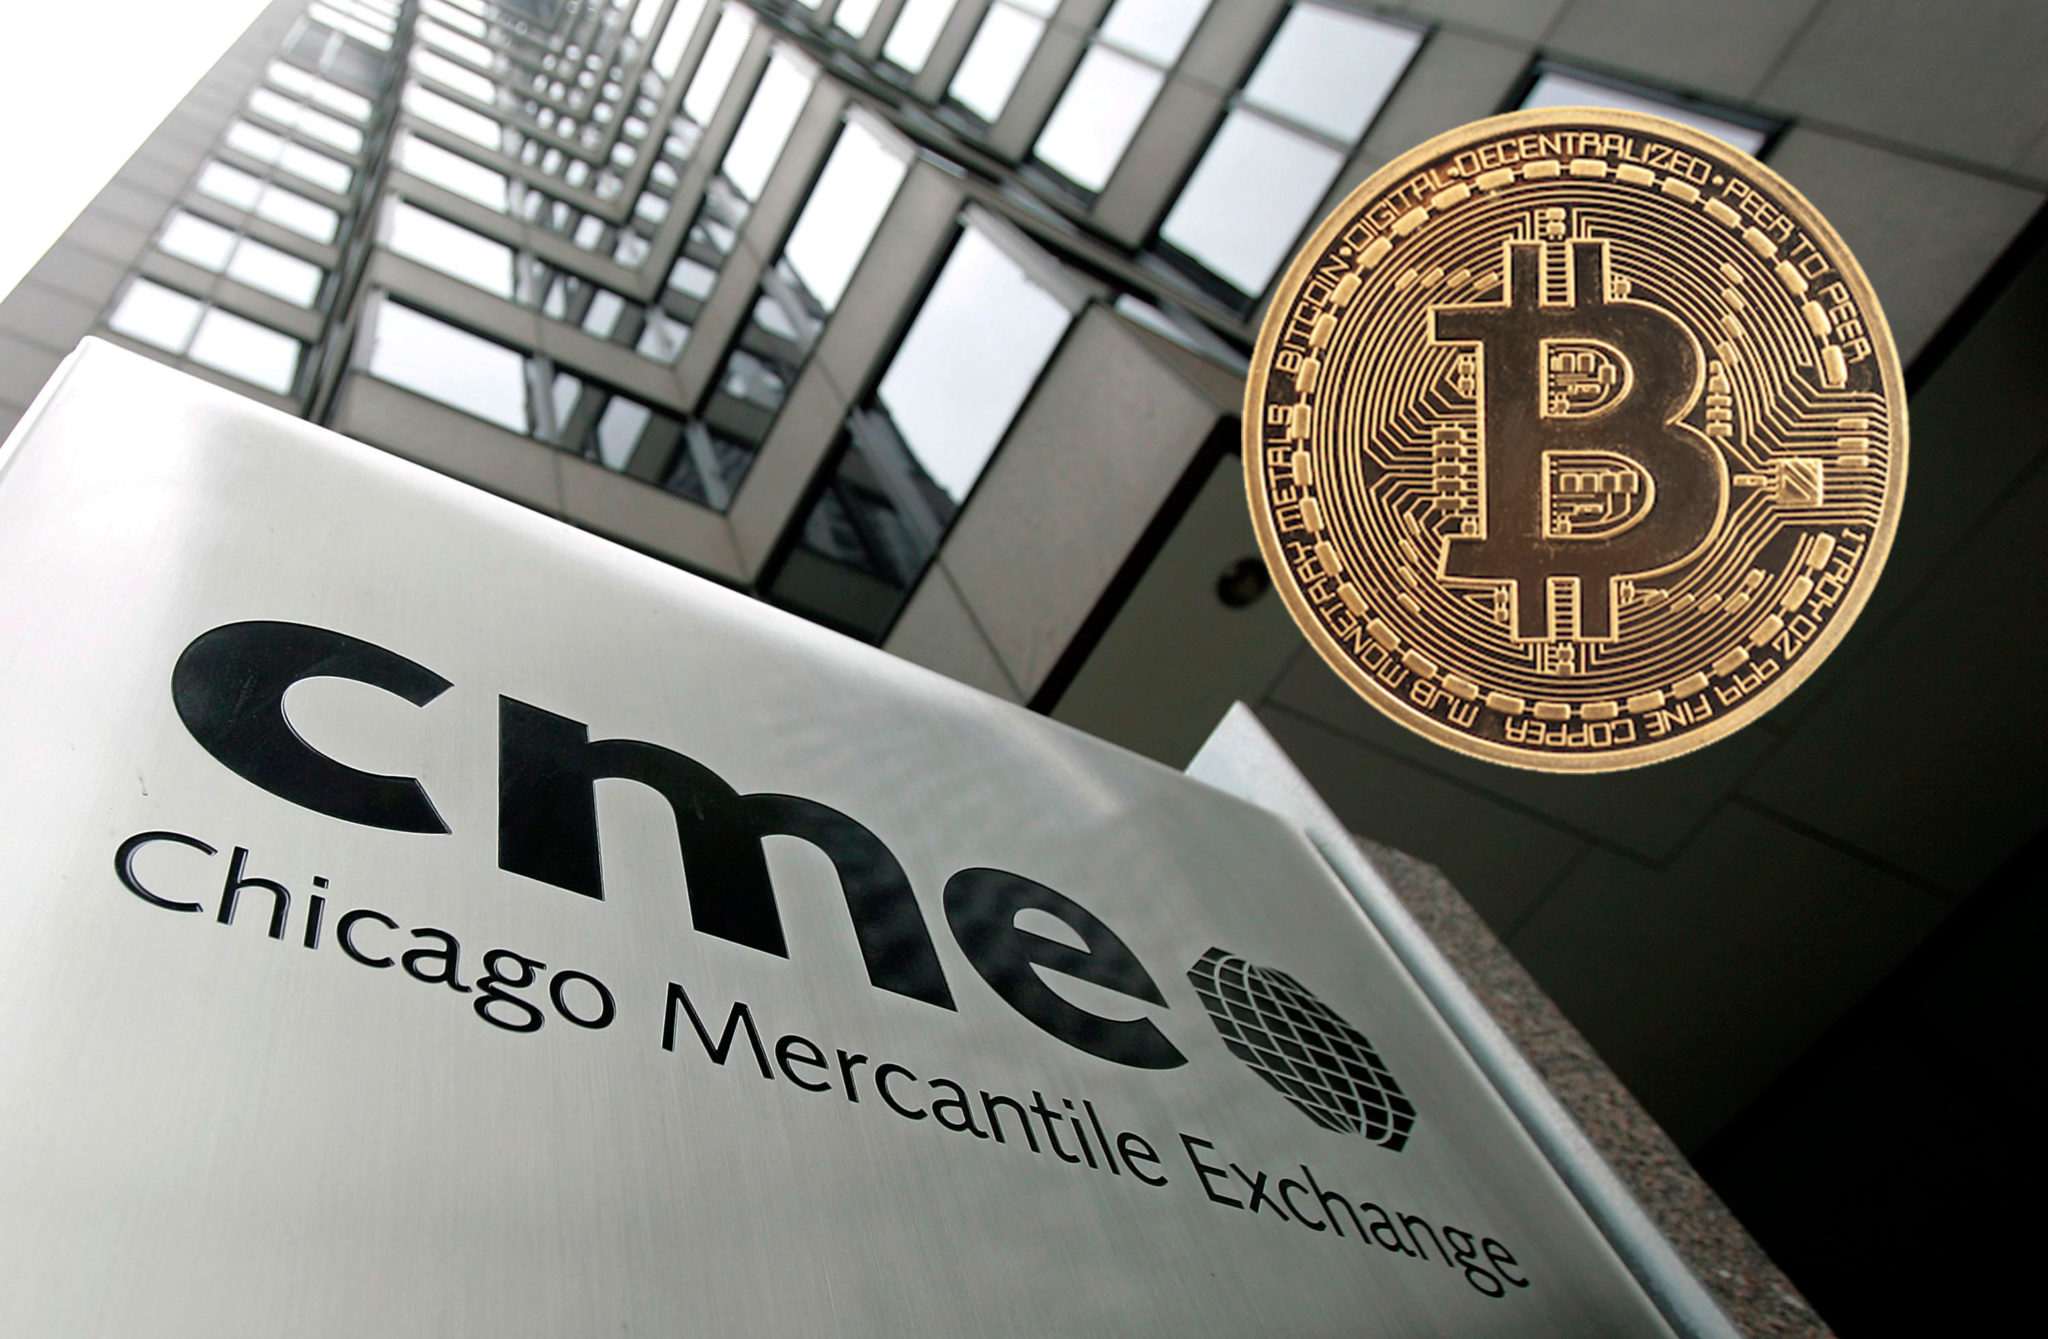 Bitcoin [BTC] – CME Group to Launch Bitcoin Futures Options in Q1 2020